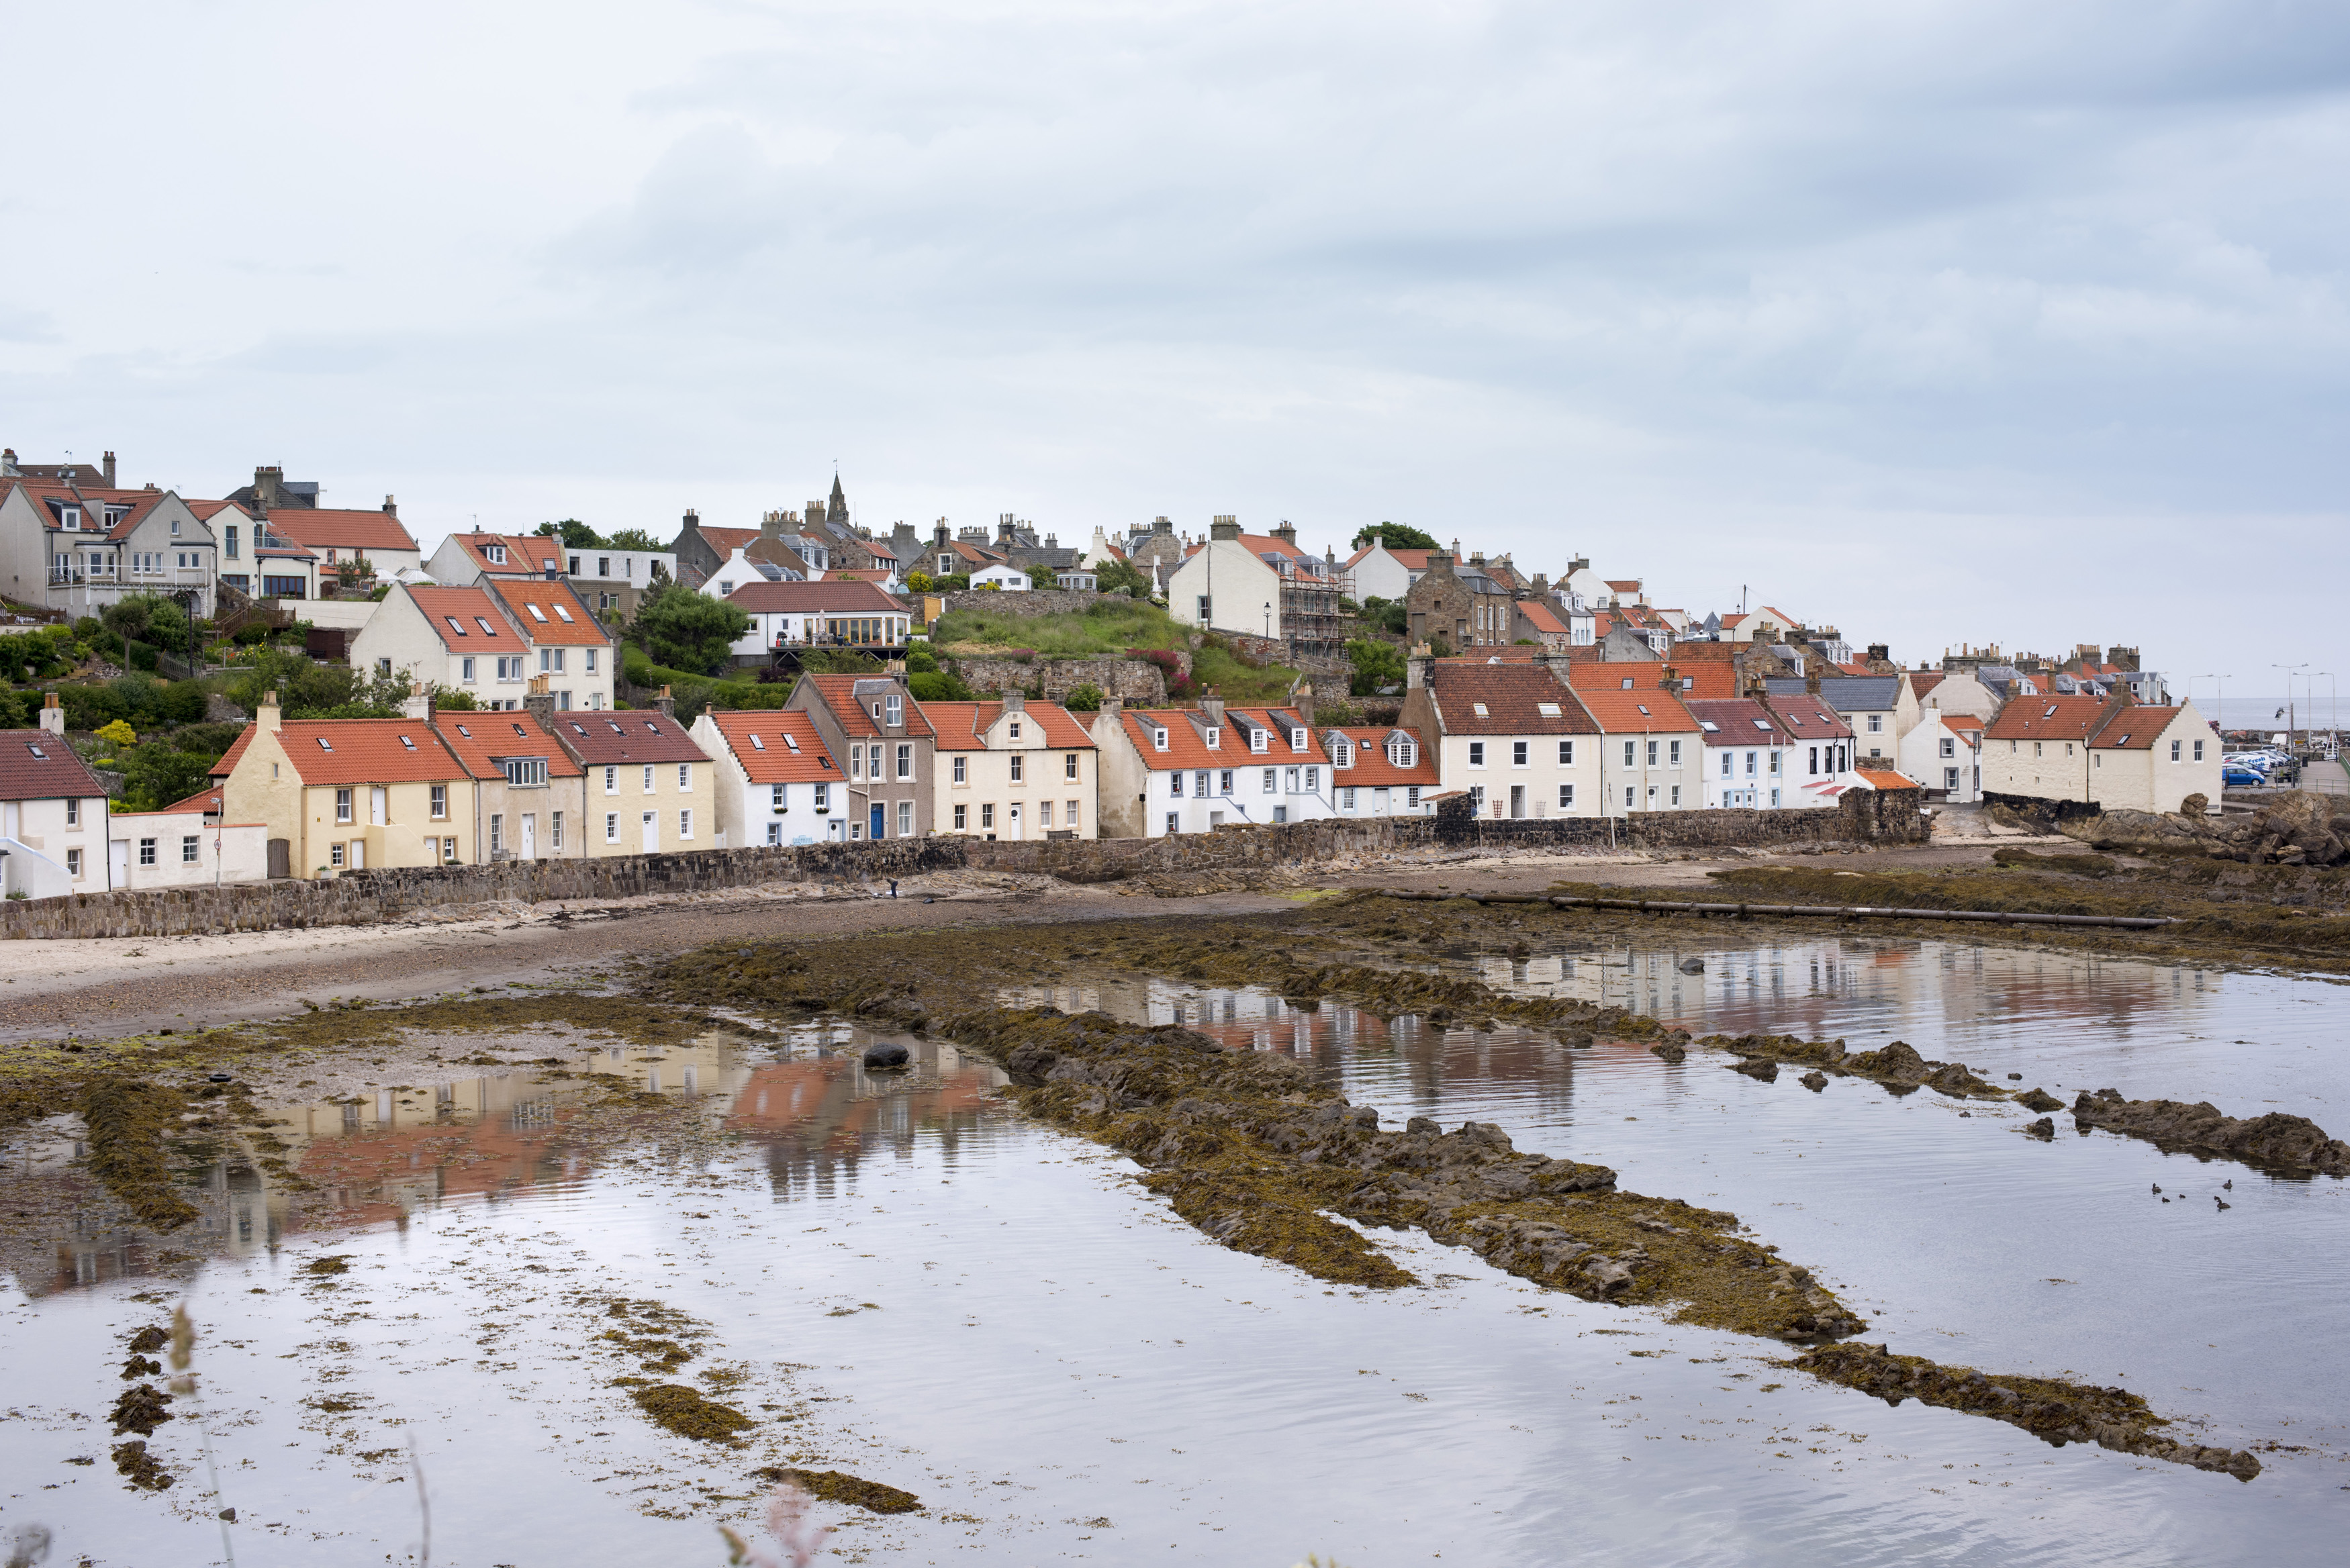 Low tide at Pittenweem, Scotland, a picturesque fishing village on the Fife coast